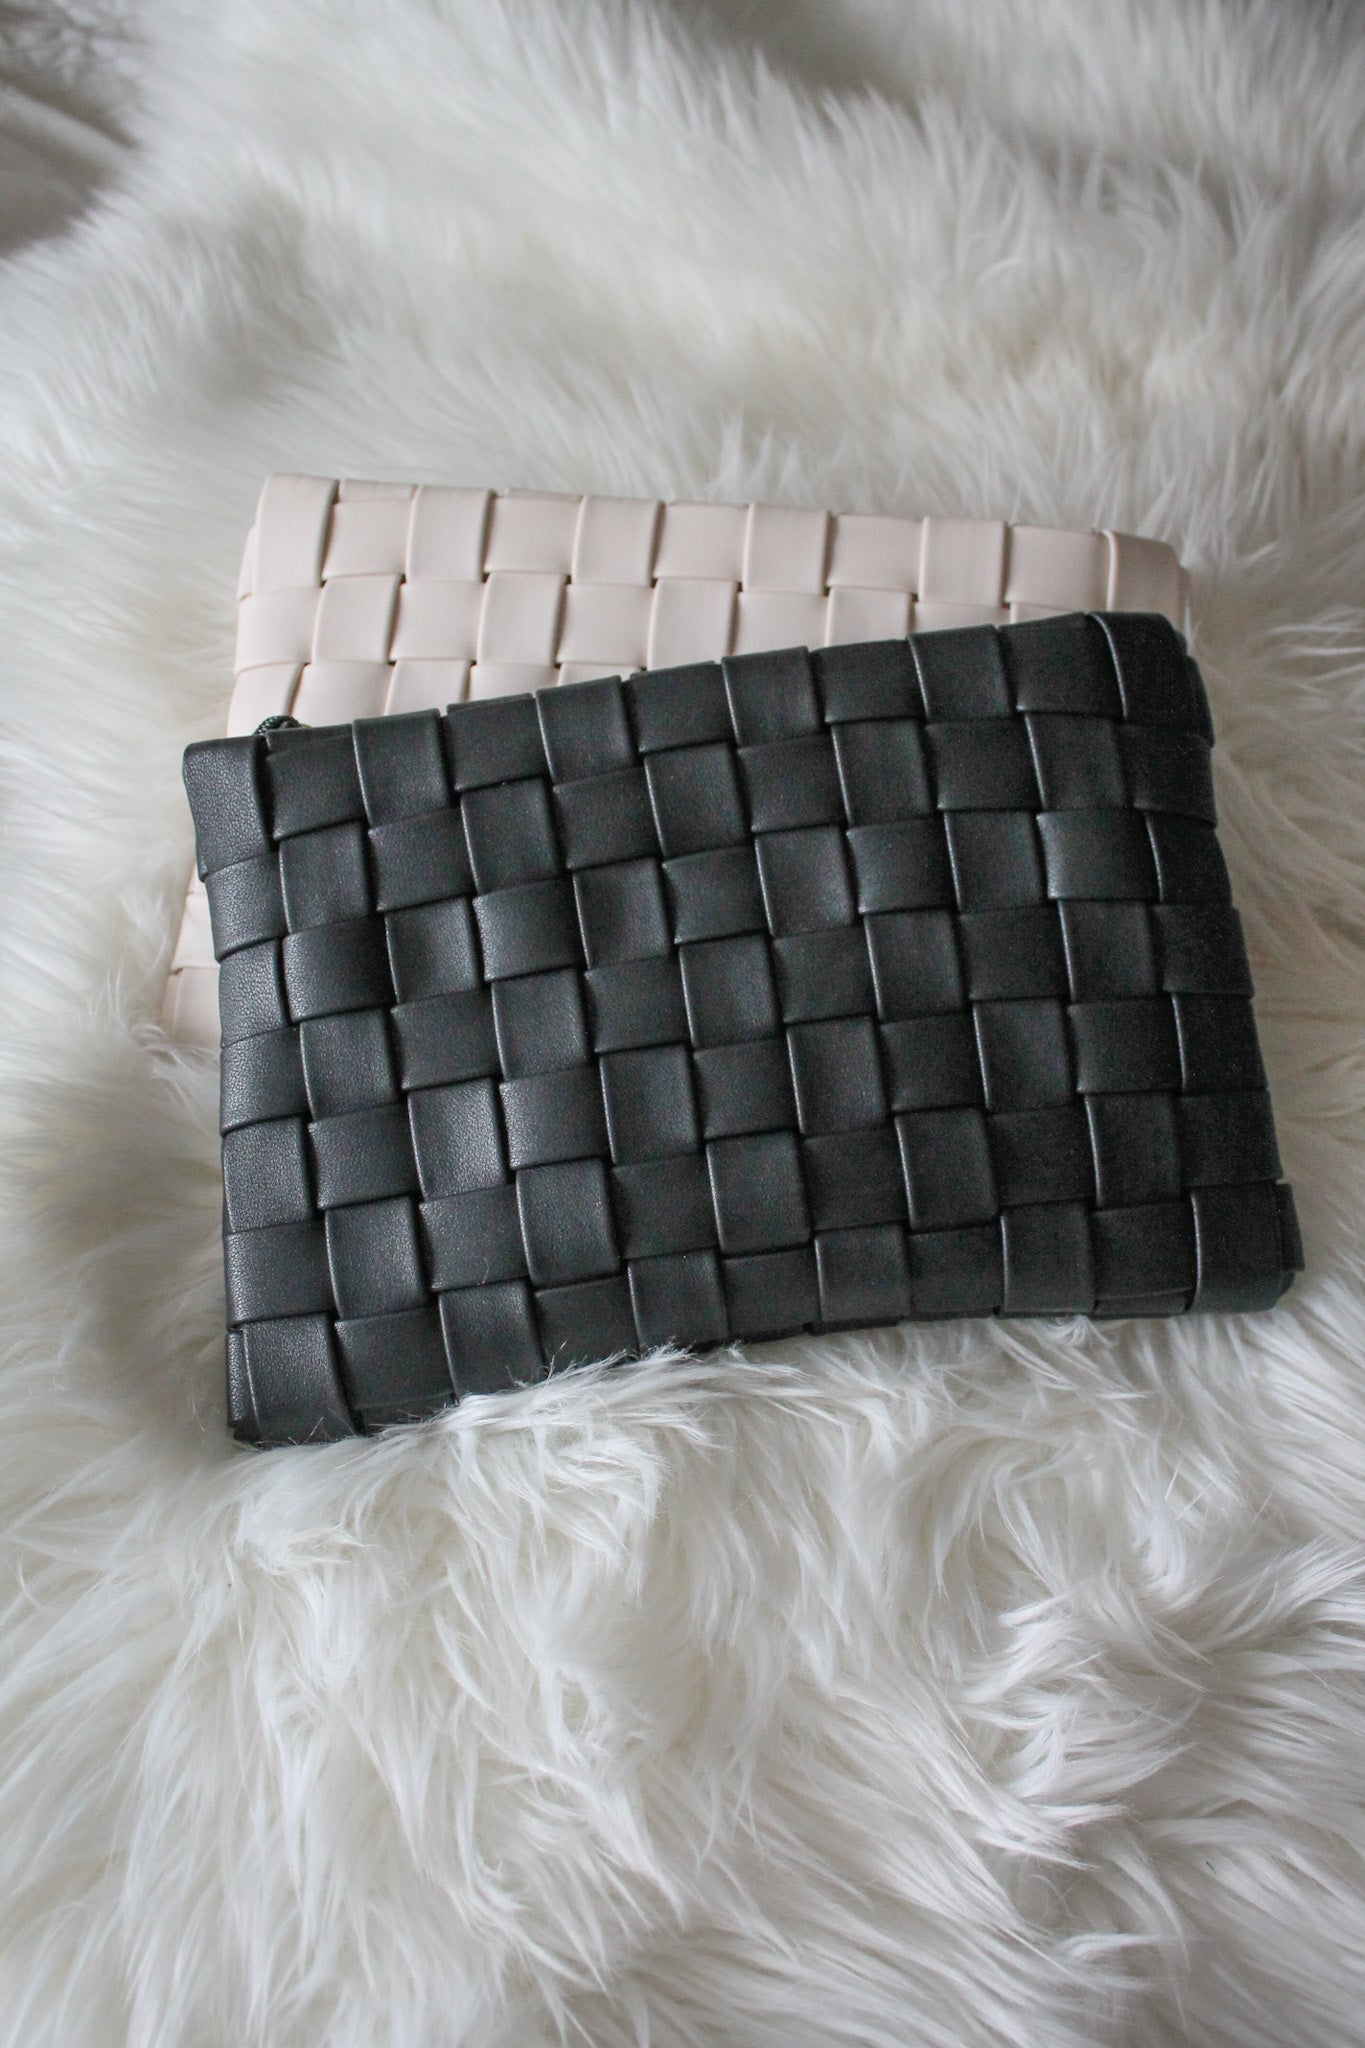 Instant Fave Woven Crossbody Clutch in Black